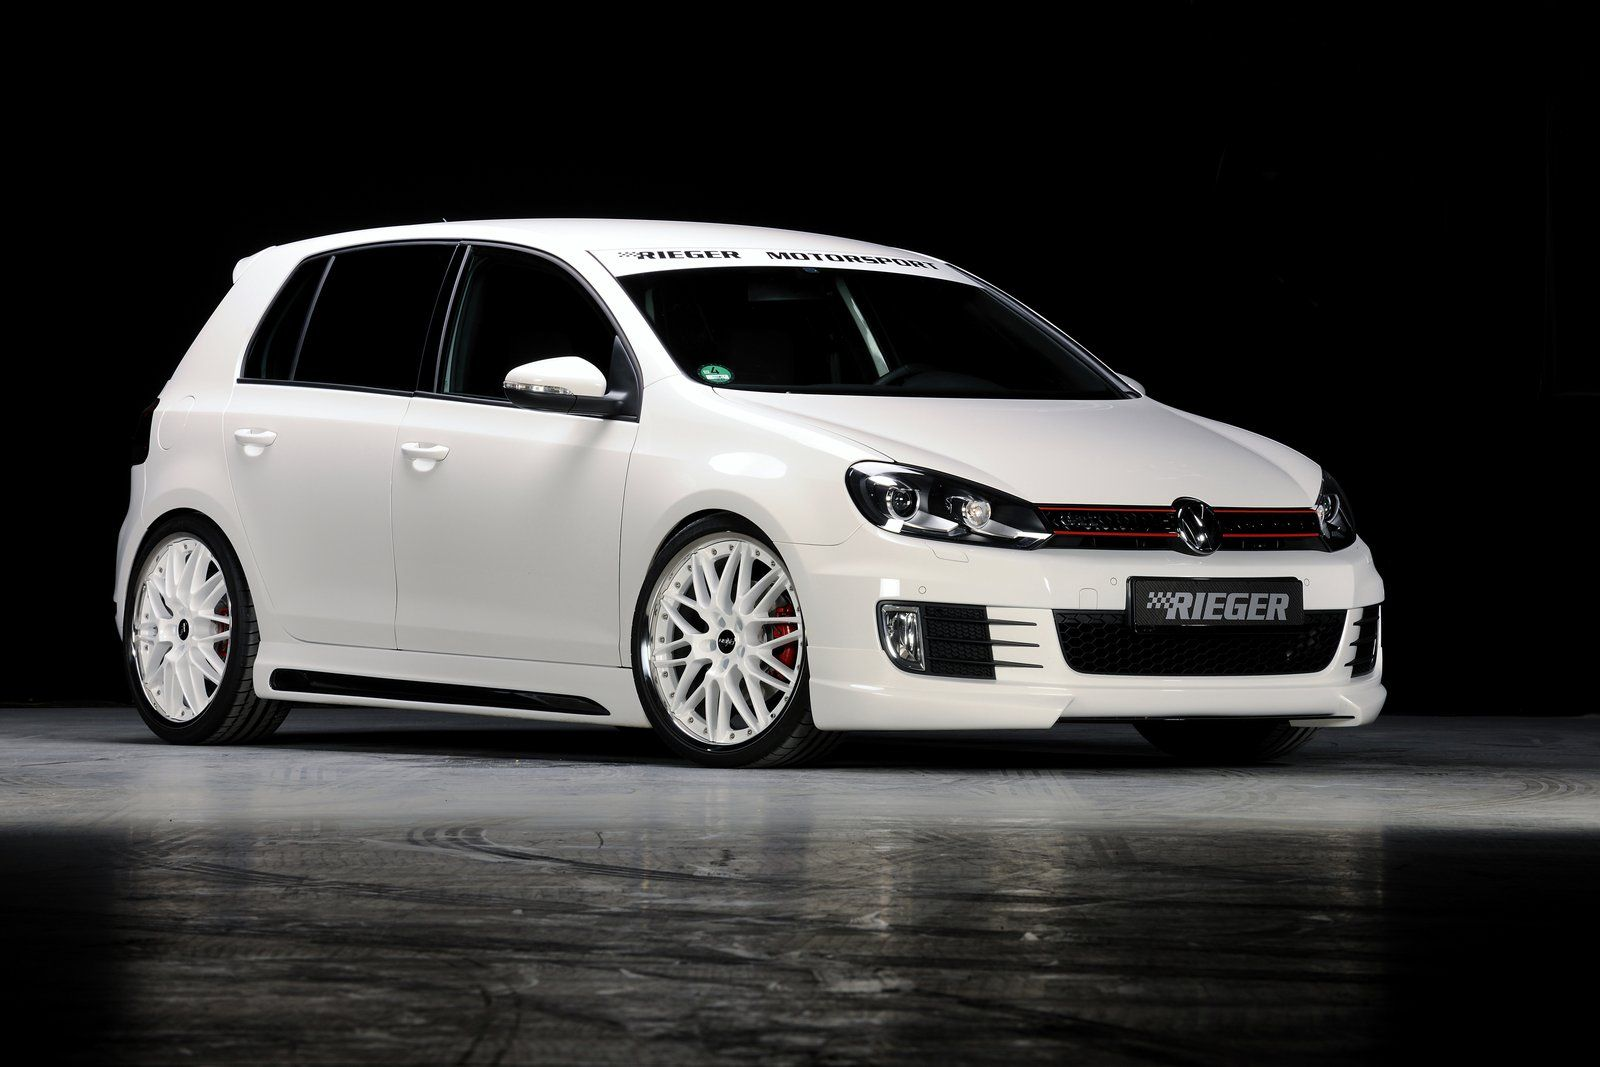 vw golf vi gti by rieger news tuning directory. Black Bedroom Furniture Sets. Home Design Ideas